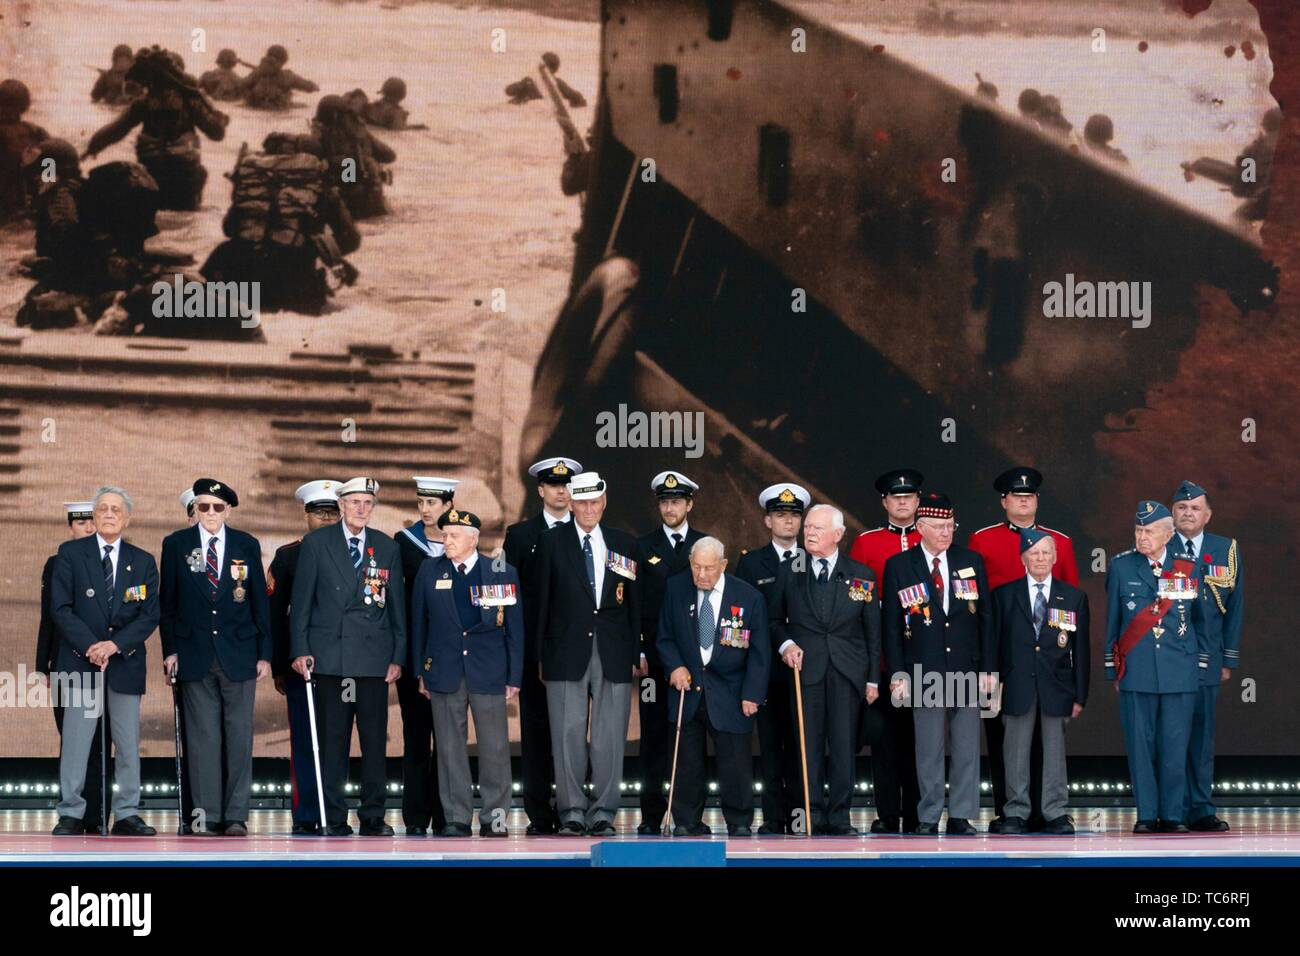 Portsmouth, UK. 05th June, 2019. World War Two veterans stand onstage during an event to marking the 75th anniversary of D-Day at the Southsea Common June 5, 2019 in Portsmouth, England. World leaders gathered on the south coast of England where troops departed for the D-Day assault 75-years-ago. Credit: Planetpix/Alamy Live News Stock Photo